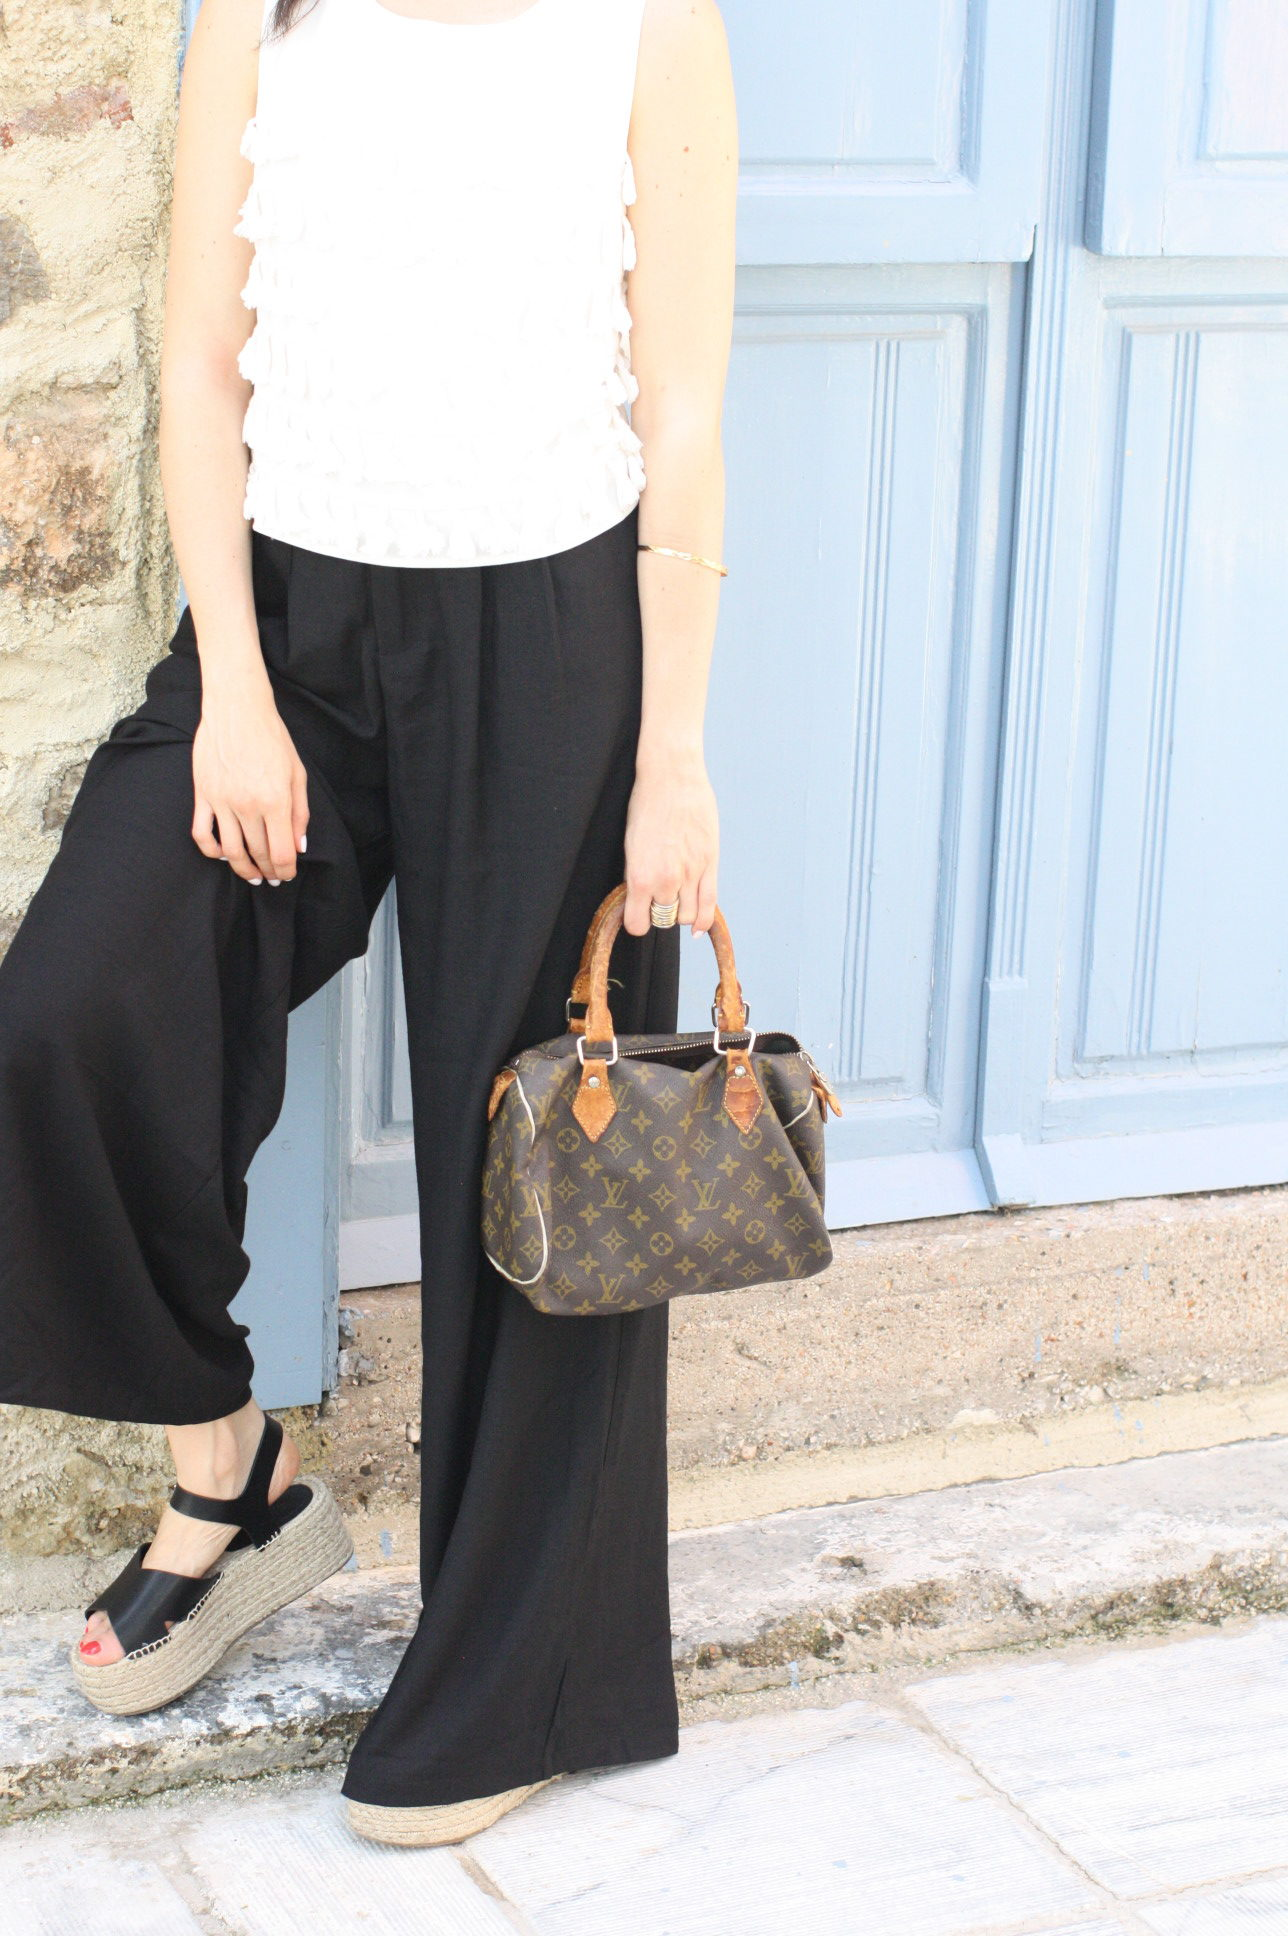 Yana Puaca of NoMad Luxuries wearing a white tassel top and black palazzo pants with asos flatform shoes and a louis vuitton purse